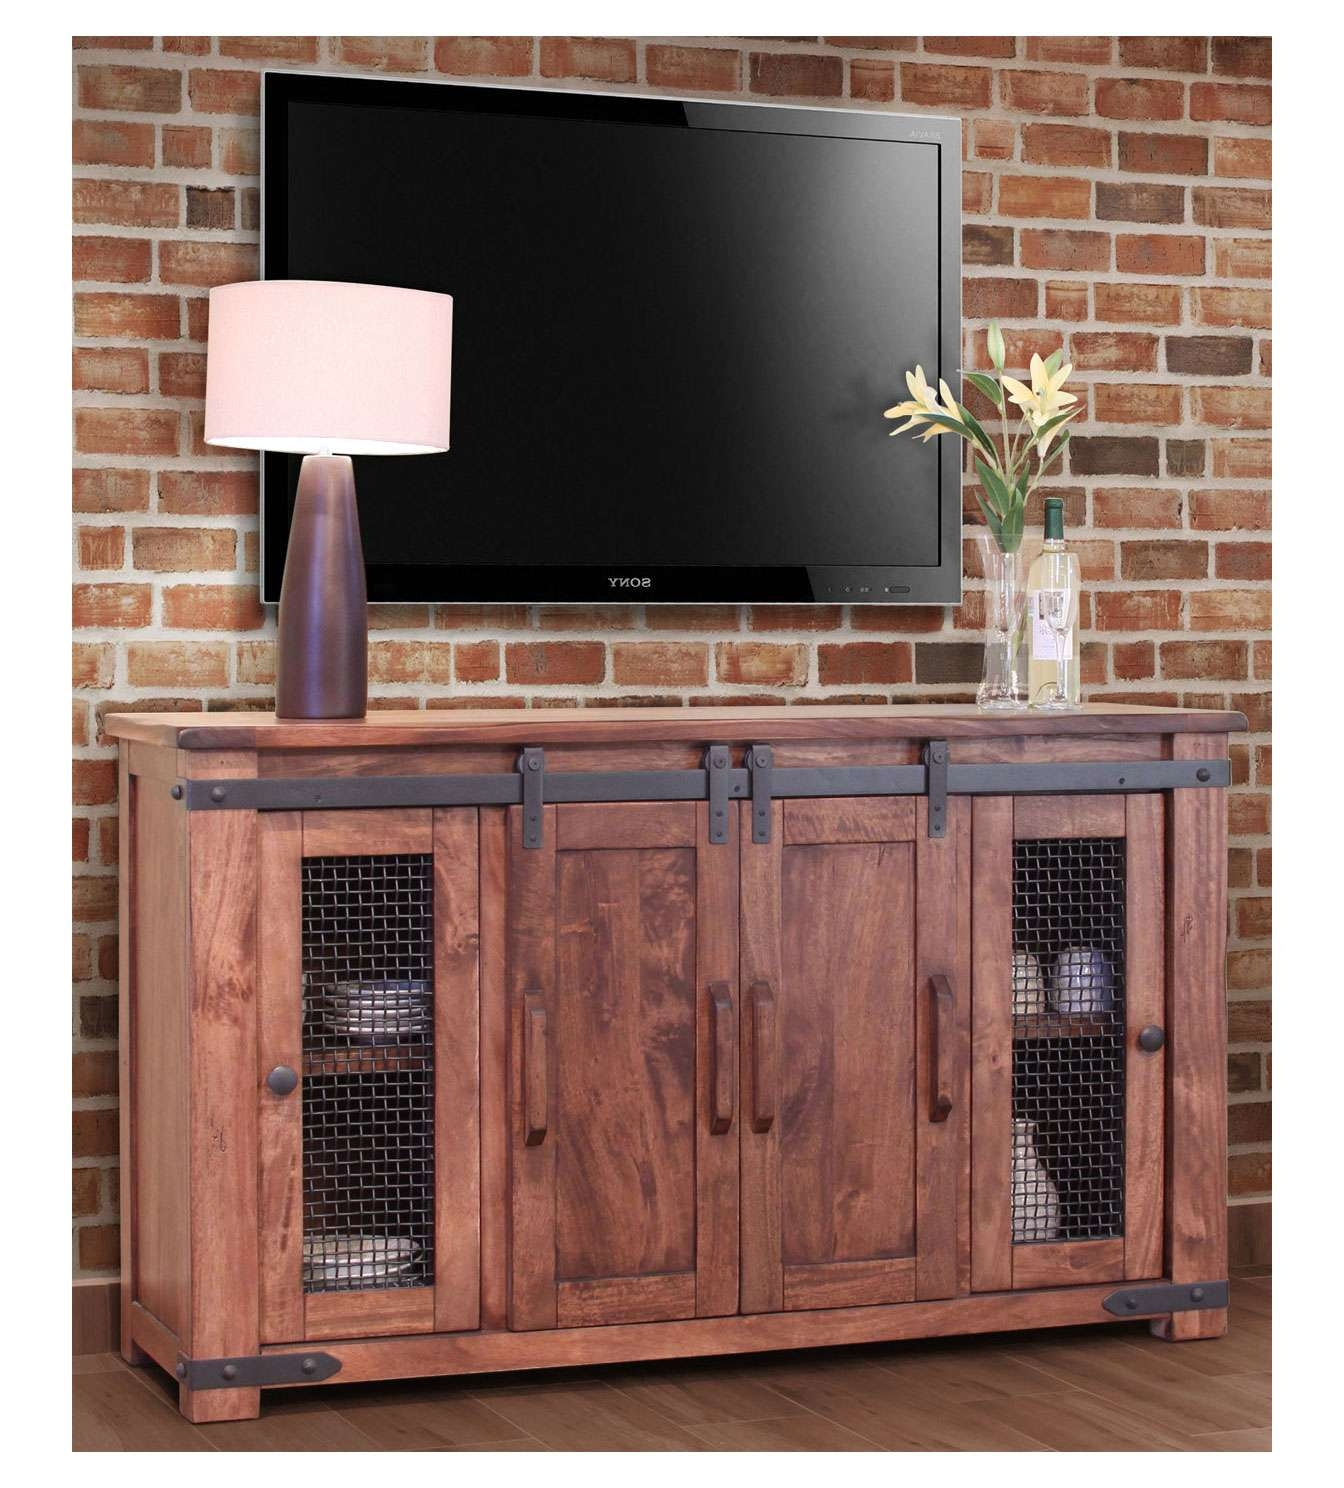 Lovely Tall Skinny Tv Stand 12 For Your Home Decorating Ideas With Intended For Tall Skinny Tv Stands (View 13 of 15)